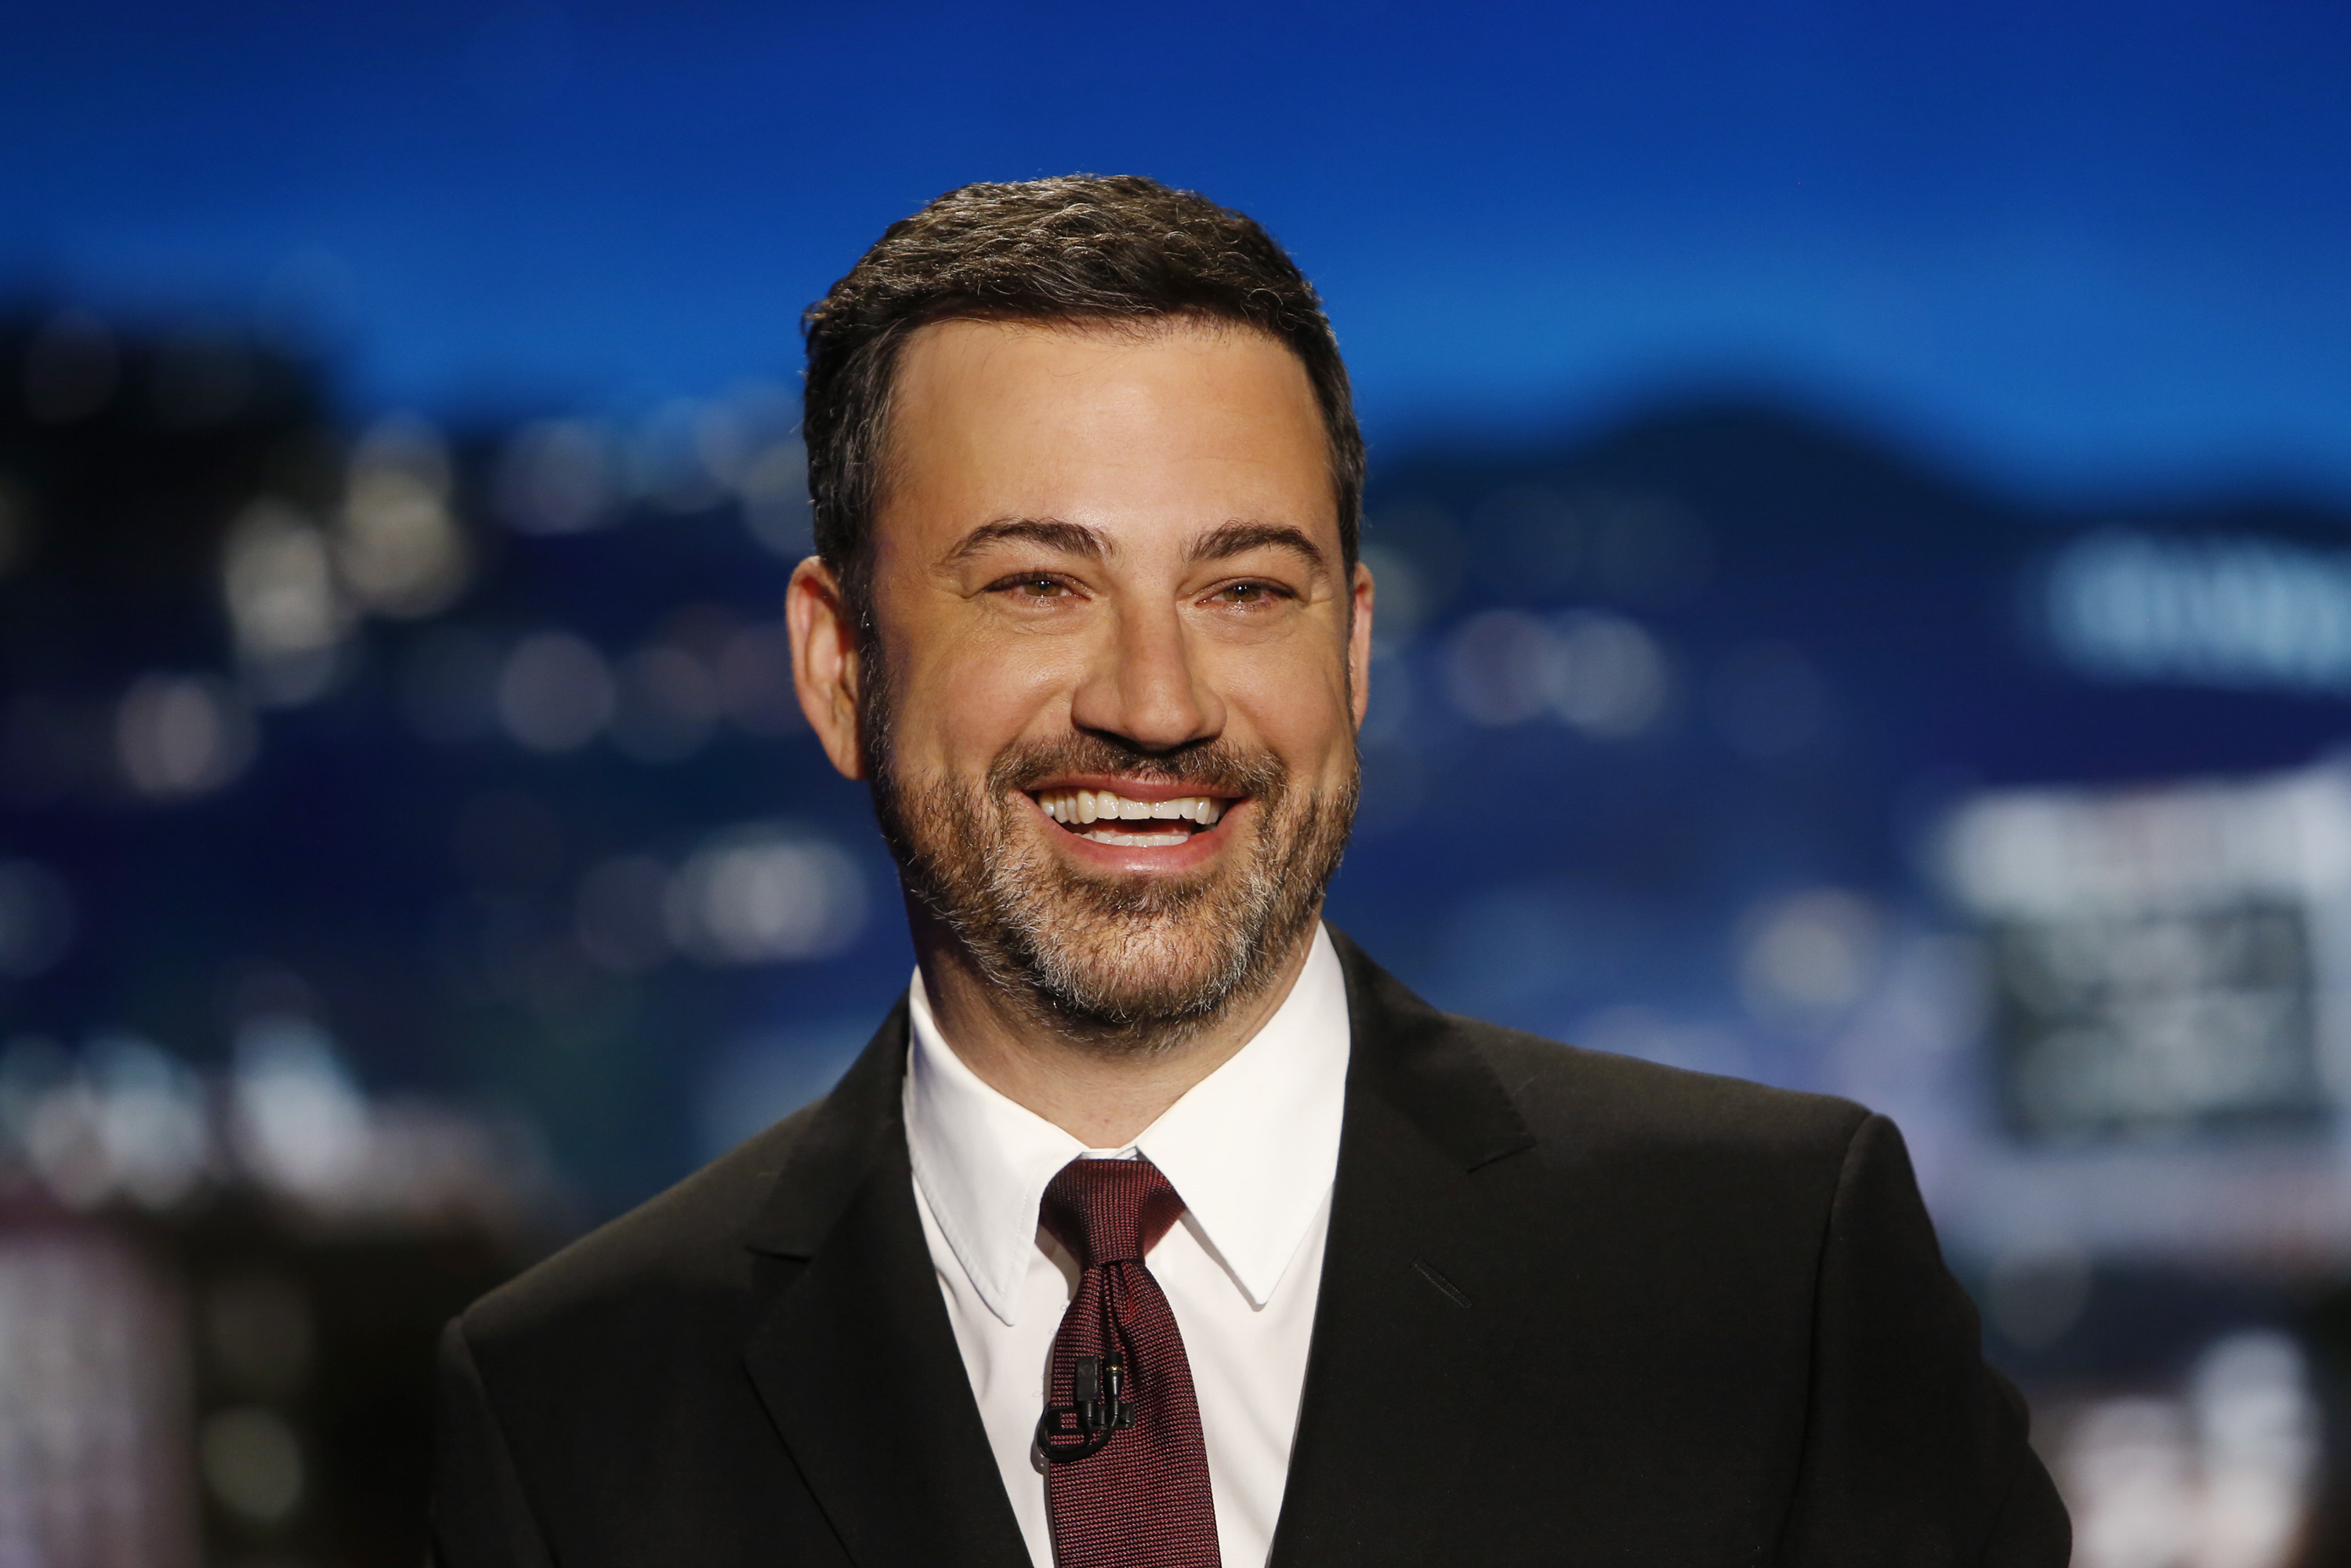 Jimmy Kimmel Live  airs every weeknight at 11:35 p.m. EST and features a diverse lineup of guests that includes celebrities, athletes, musical acts, comedians and human-interest subjects, along with comedy bits and a house band.